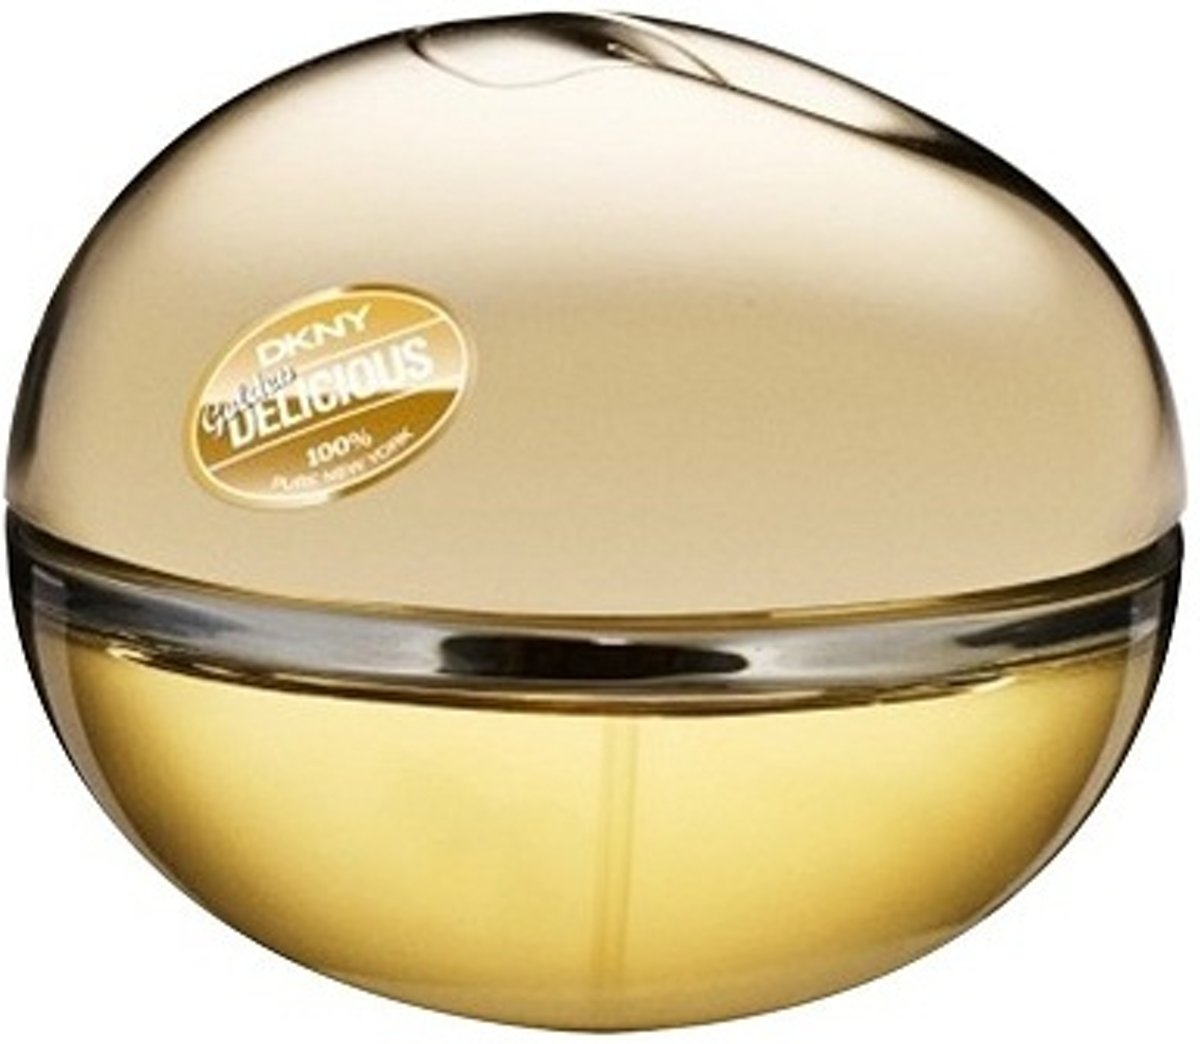 MULTI BUNDEL 3 stuks Donna Karan Golden Delicious Eau De Perfume Spray 50ml